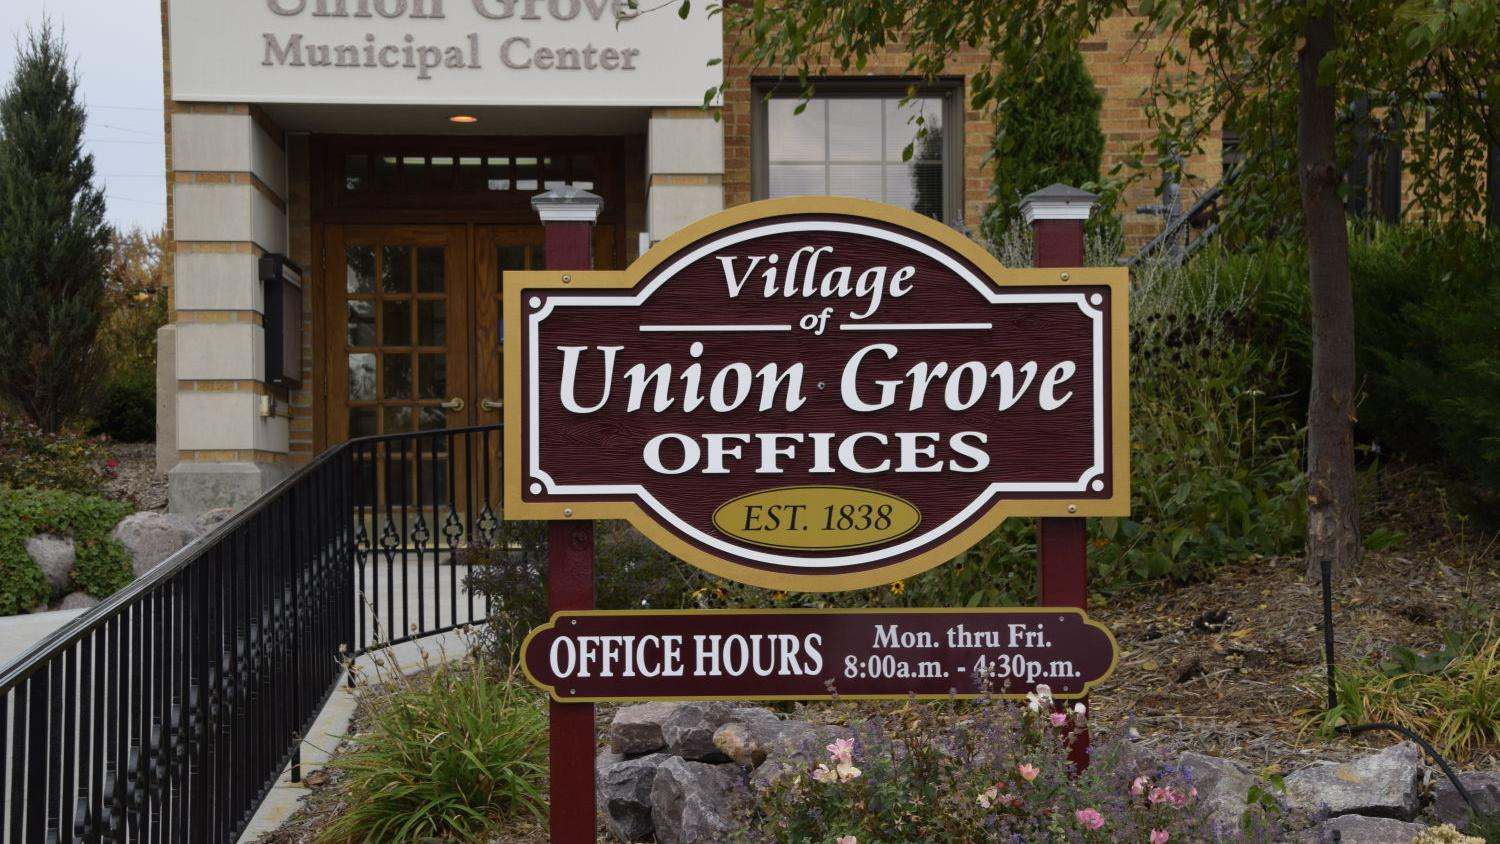 union grove latino personals You can help save the irreplaceable historic buildings, monuments, communities and landscapes that the national trust for historic preservation has designated.